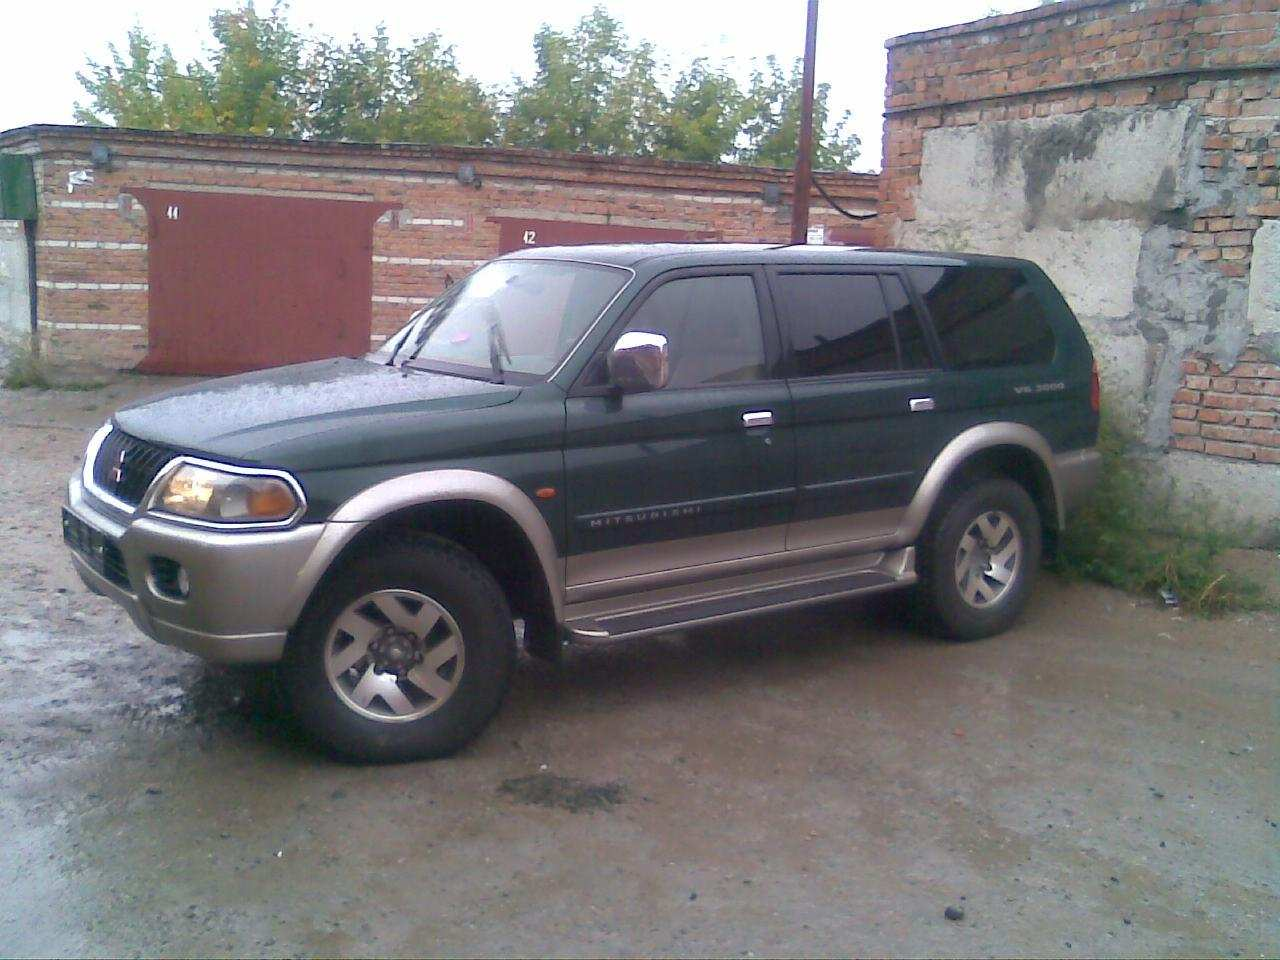 2000 Mitsubishi Pajero Sport Pictures, 3000cc., Gasoline, Automatic For Sale